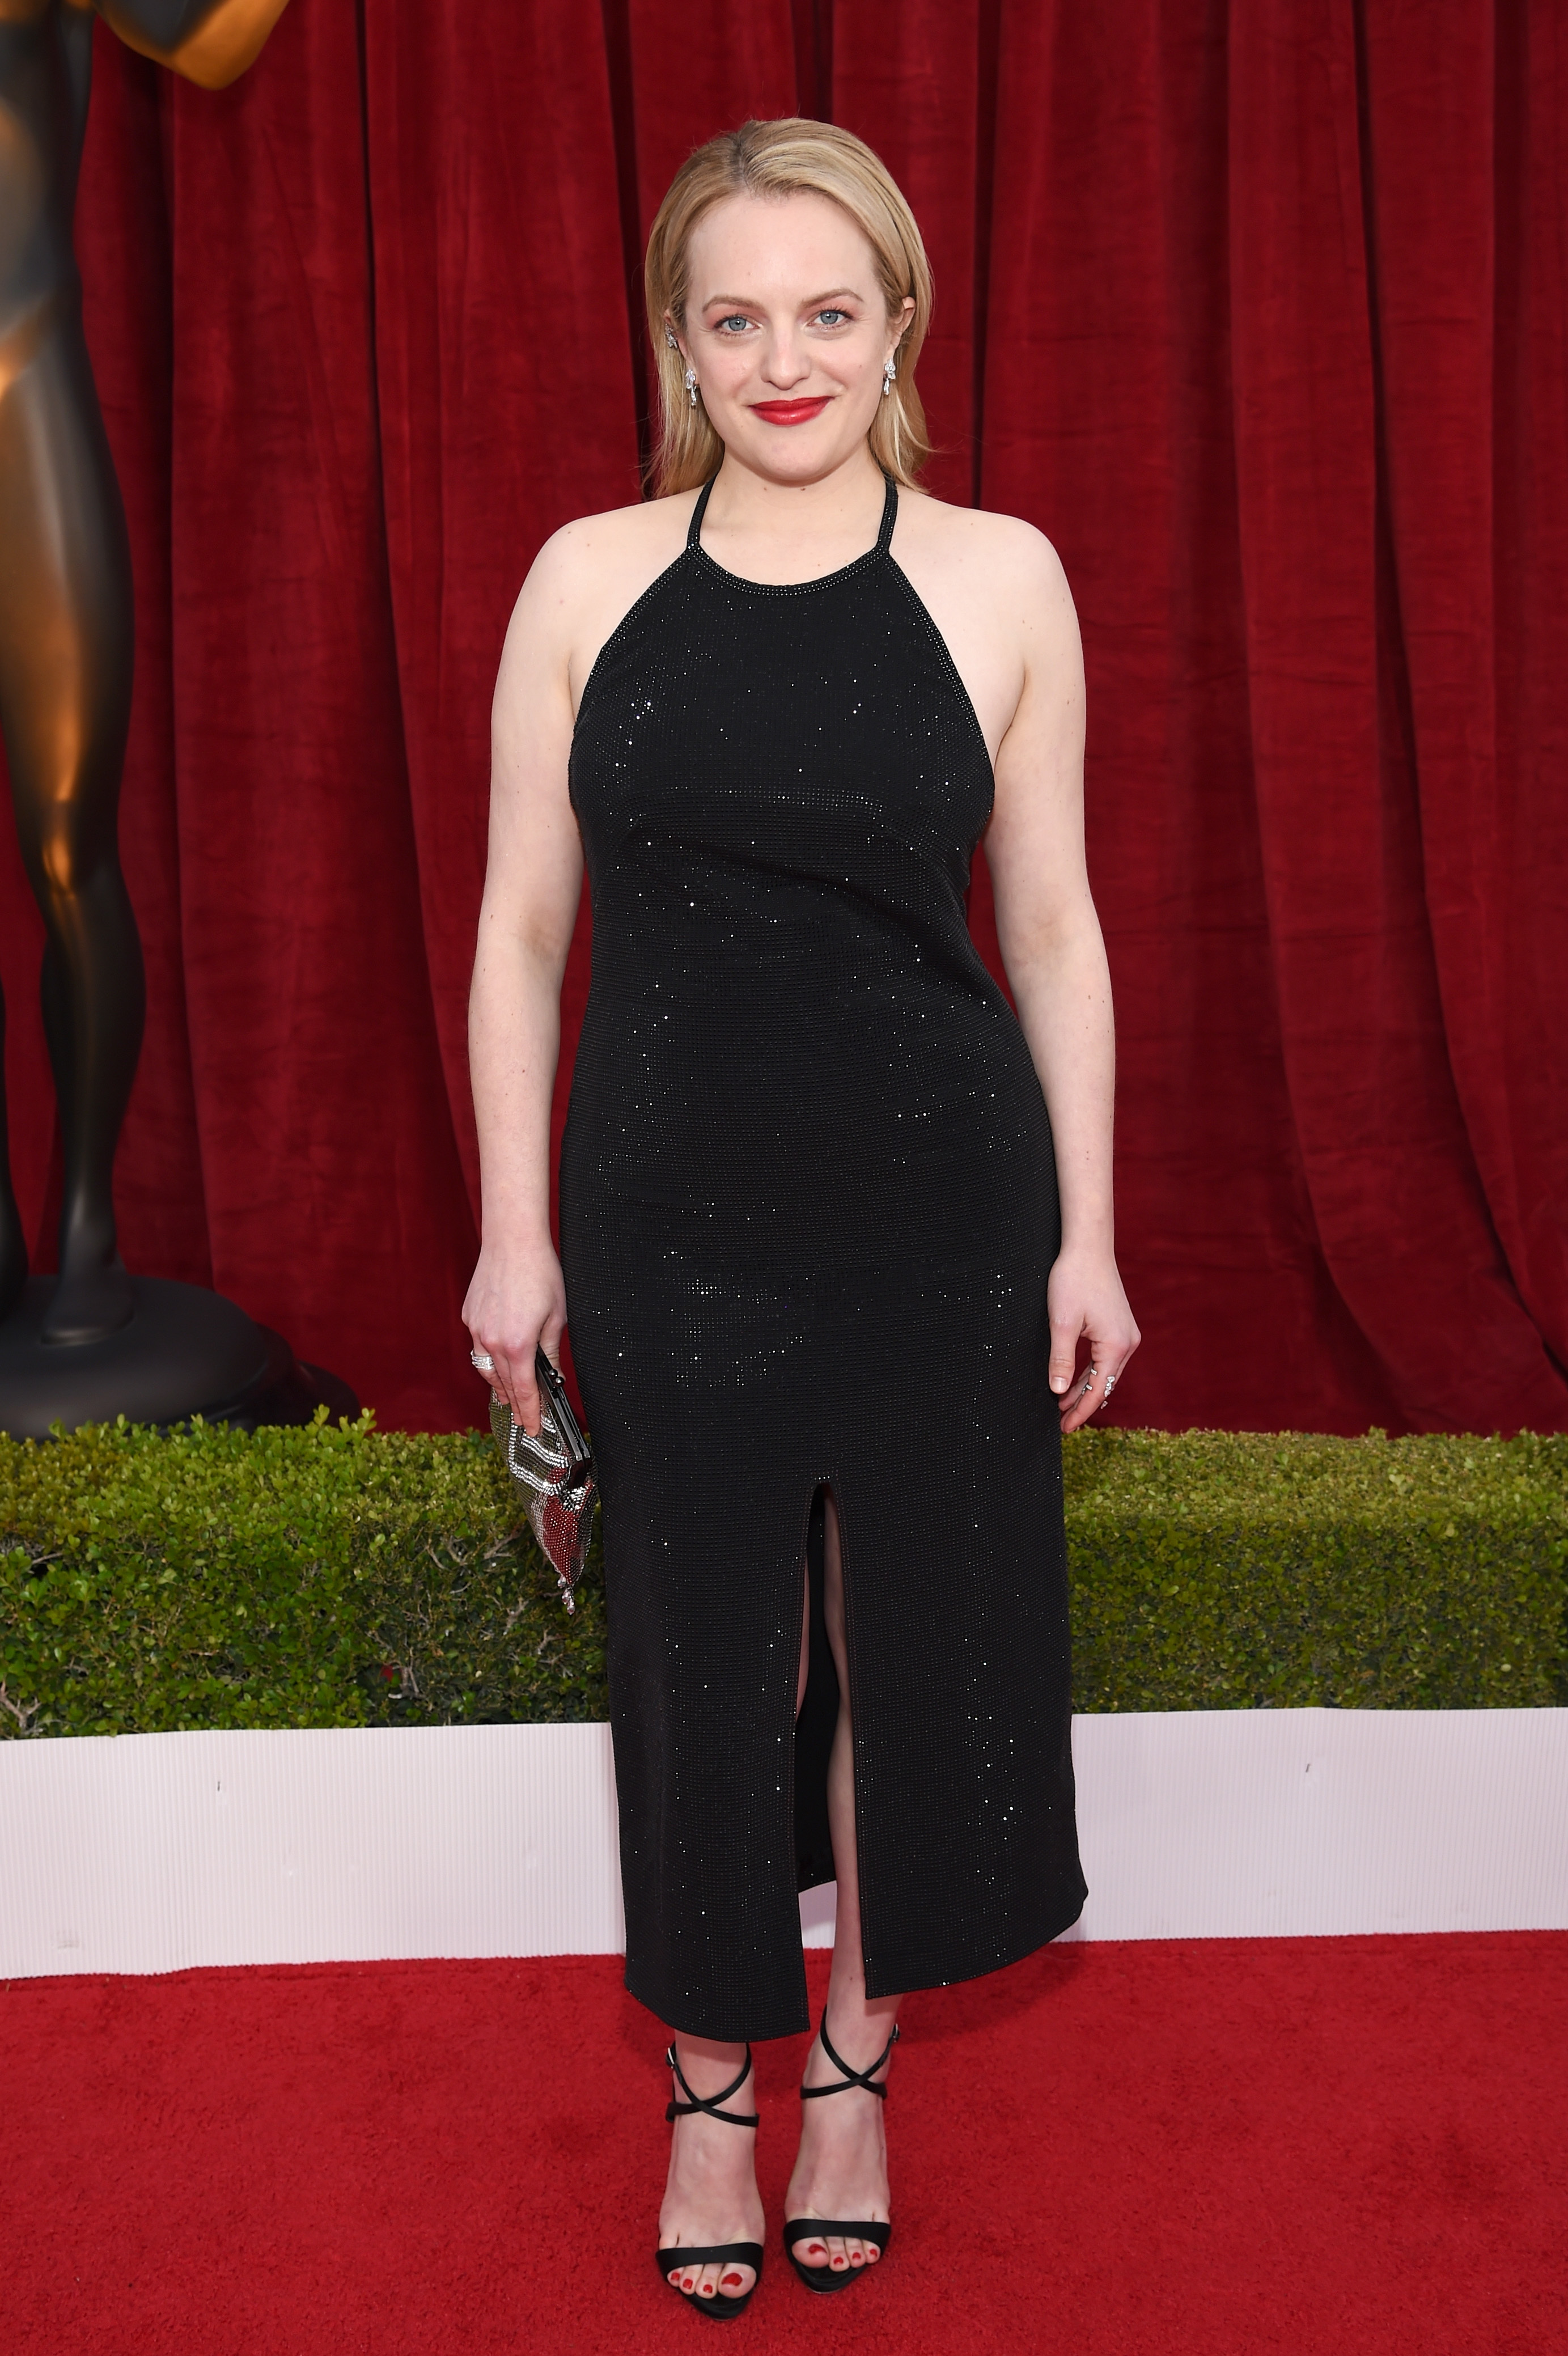 Elisabeth Moss attends the 24th Annual Screen Actors Guild Awards in Los Angeles on Jan. 21, 2018.